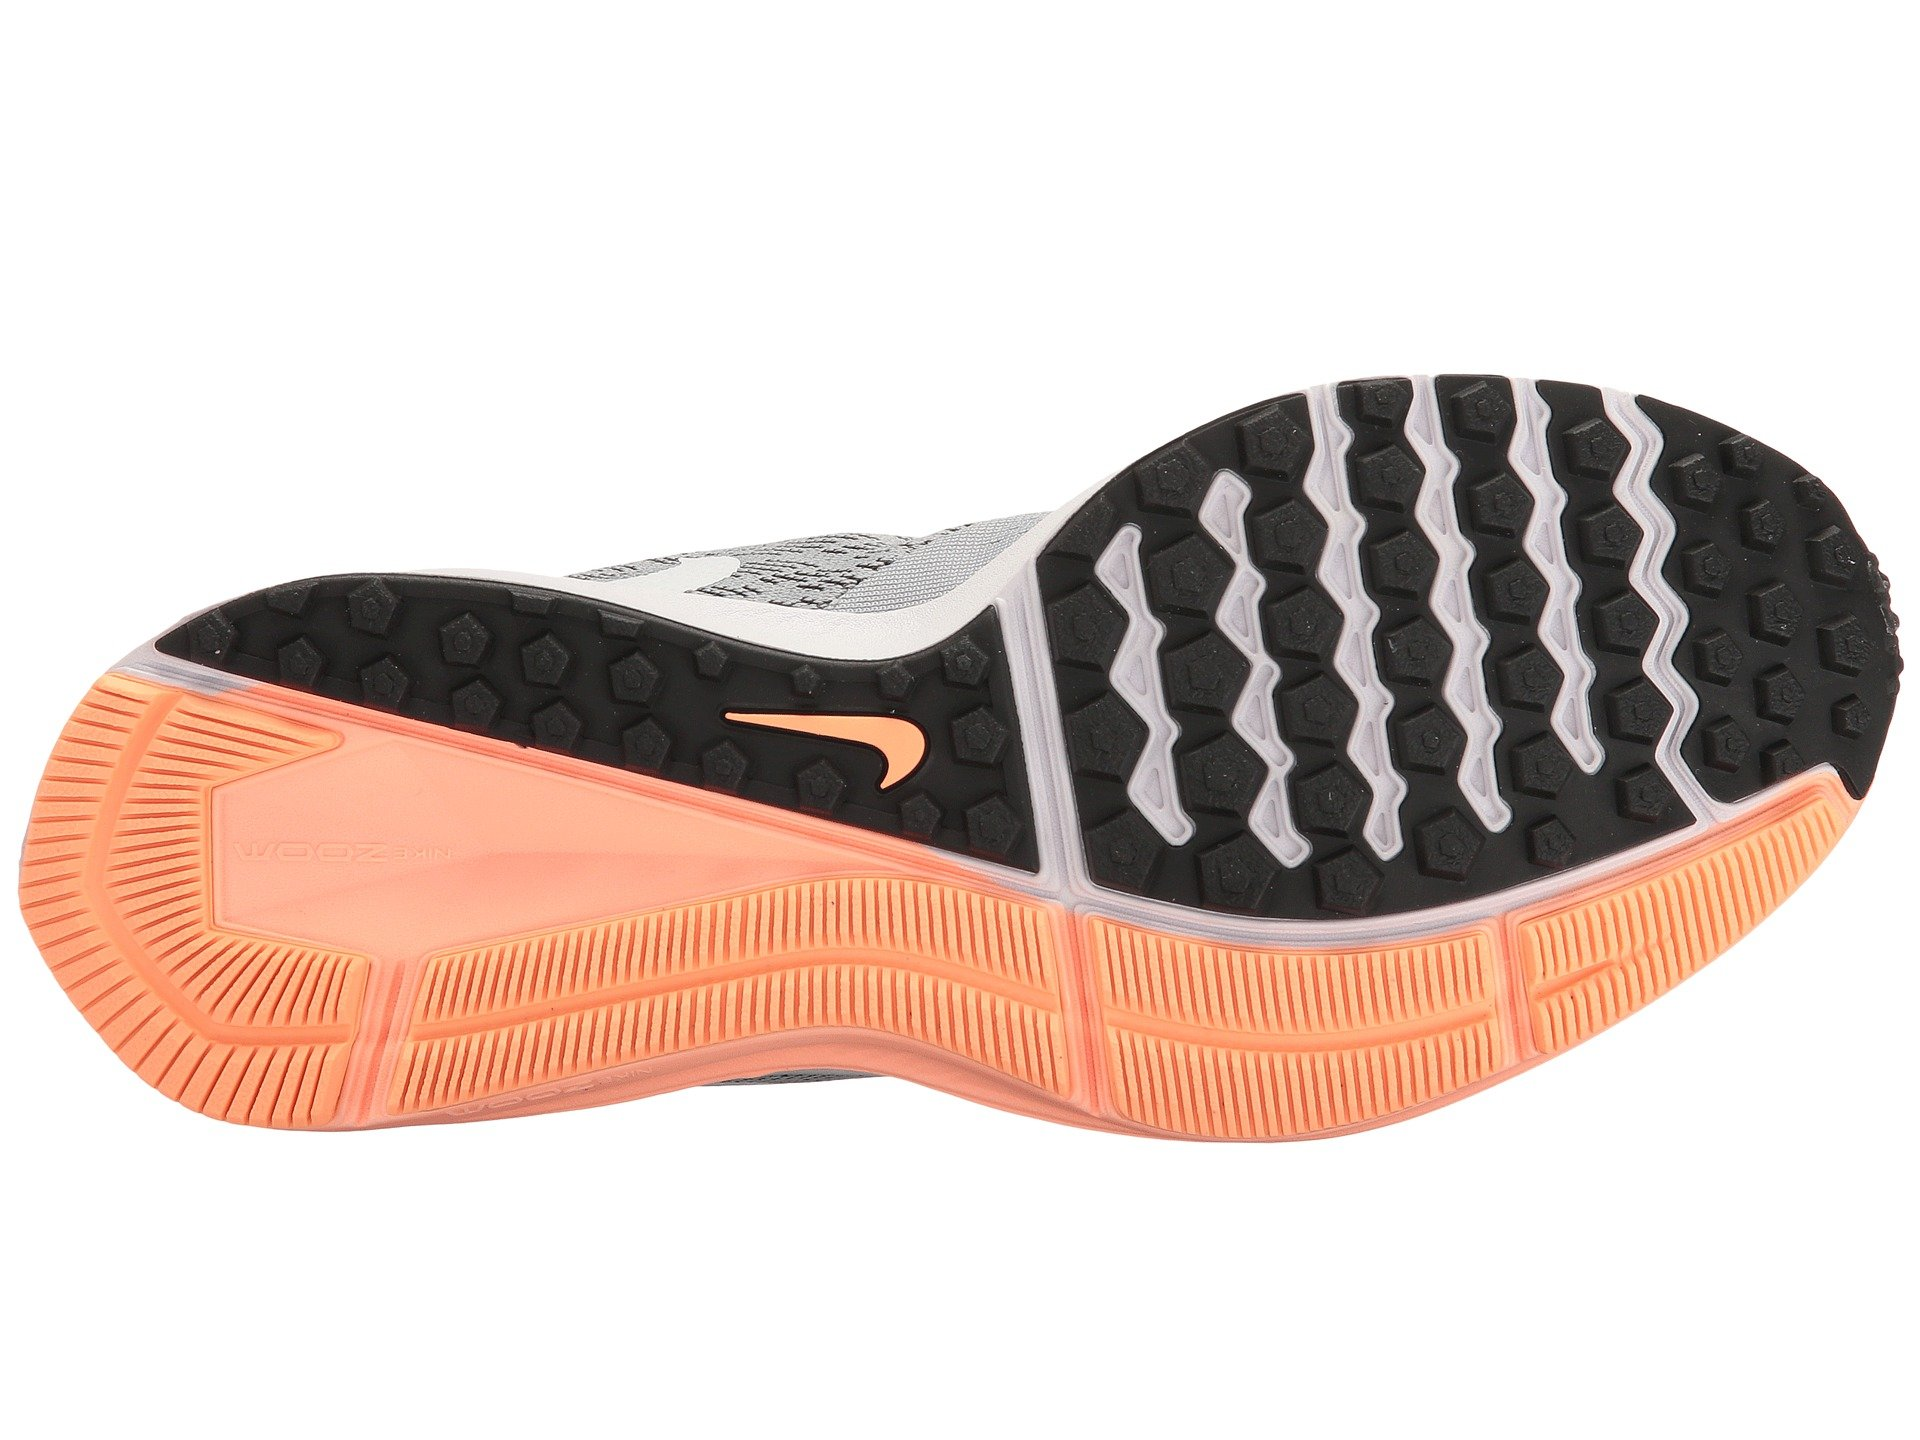 Nike Women's Air Zoom Winflo 4 Running Shoes Academy